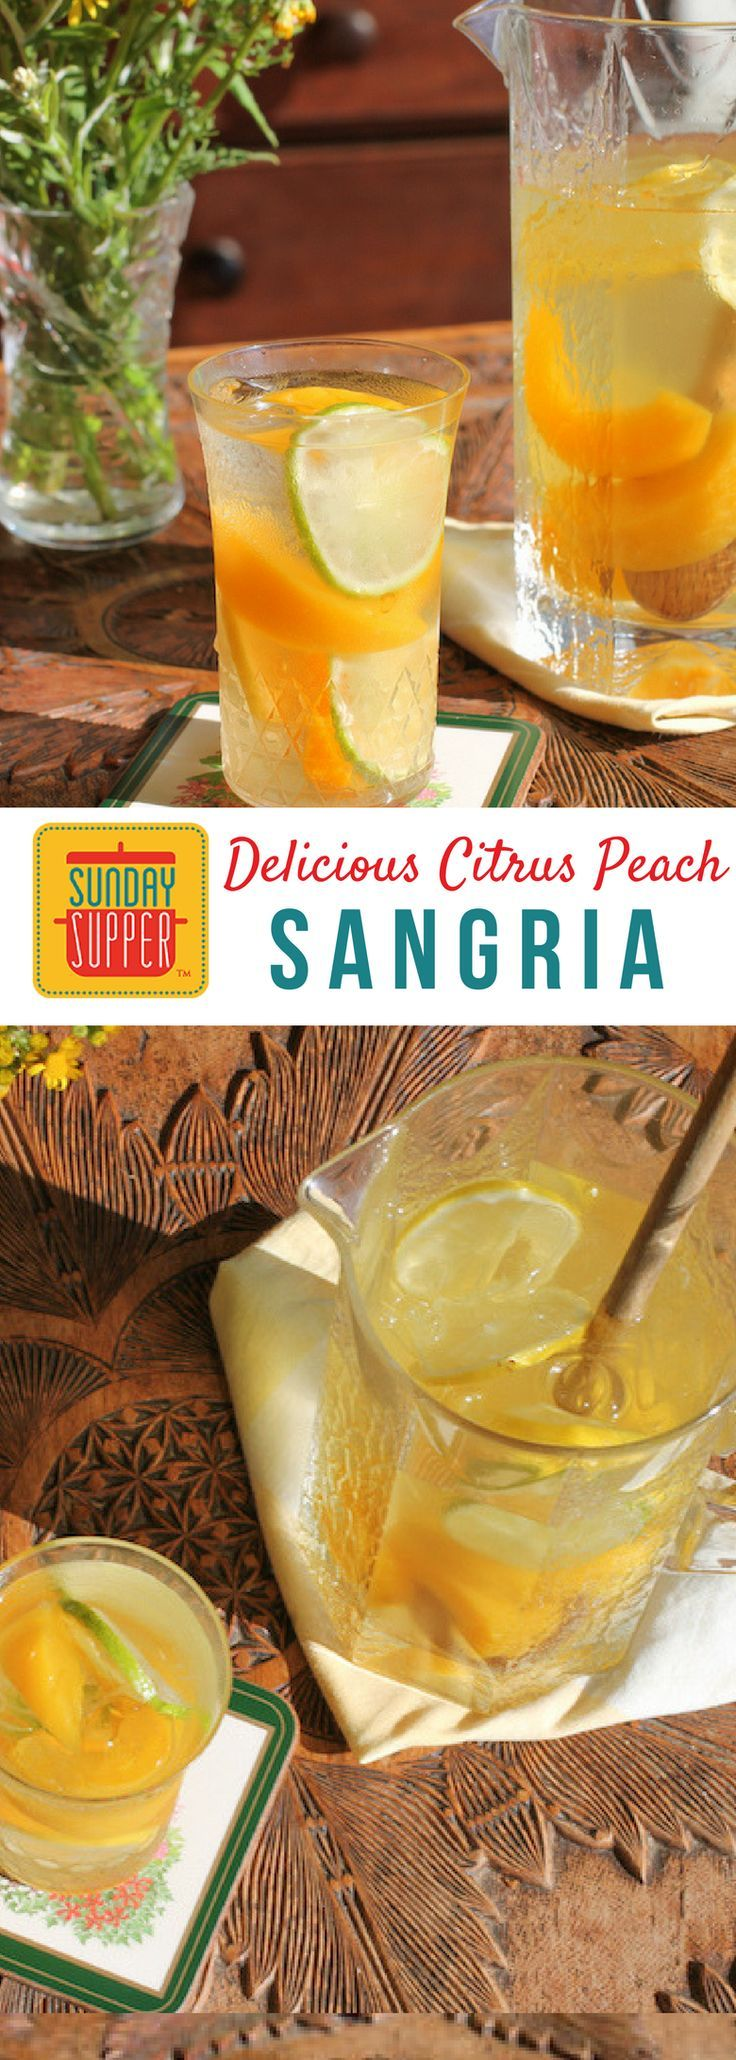 Have you always wondered how to make mixed drinks? Well then,#SundaySupperhas the perfect thing for you! Be sure to check out our Sunday Supper recipes in which we share lots of simple mixed drinks that you're sure to love - like this Citrus Peach Sangria!#SundaySupper #simplemixeddrinks